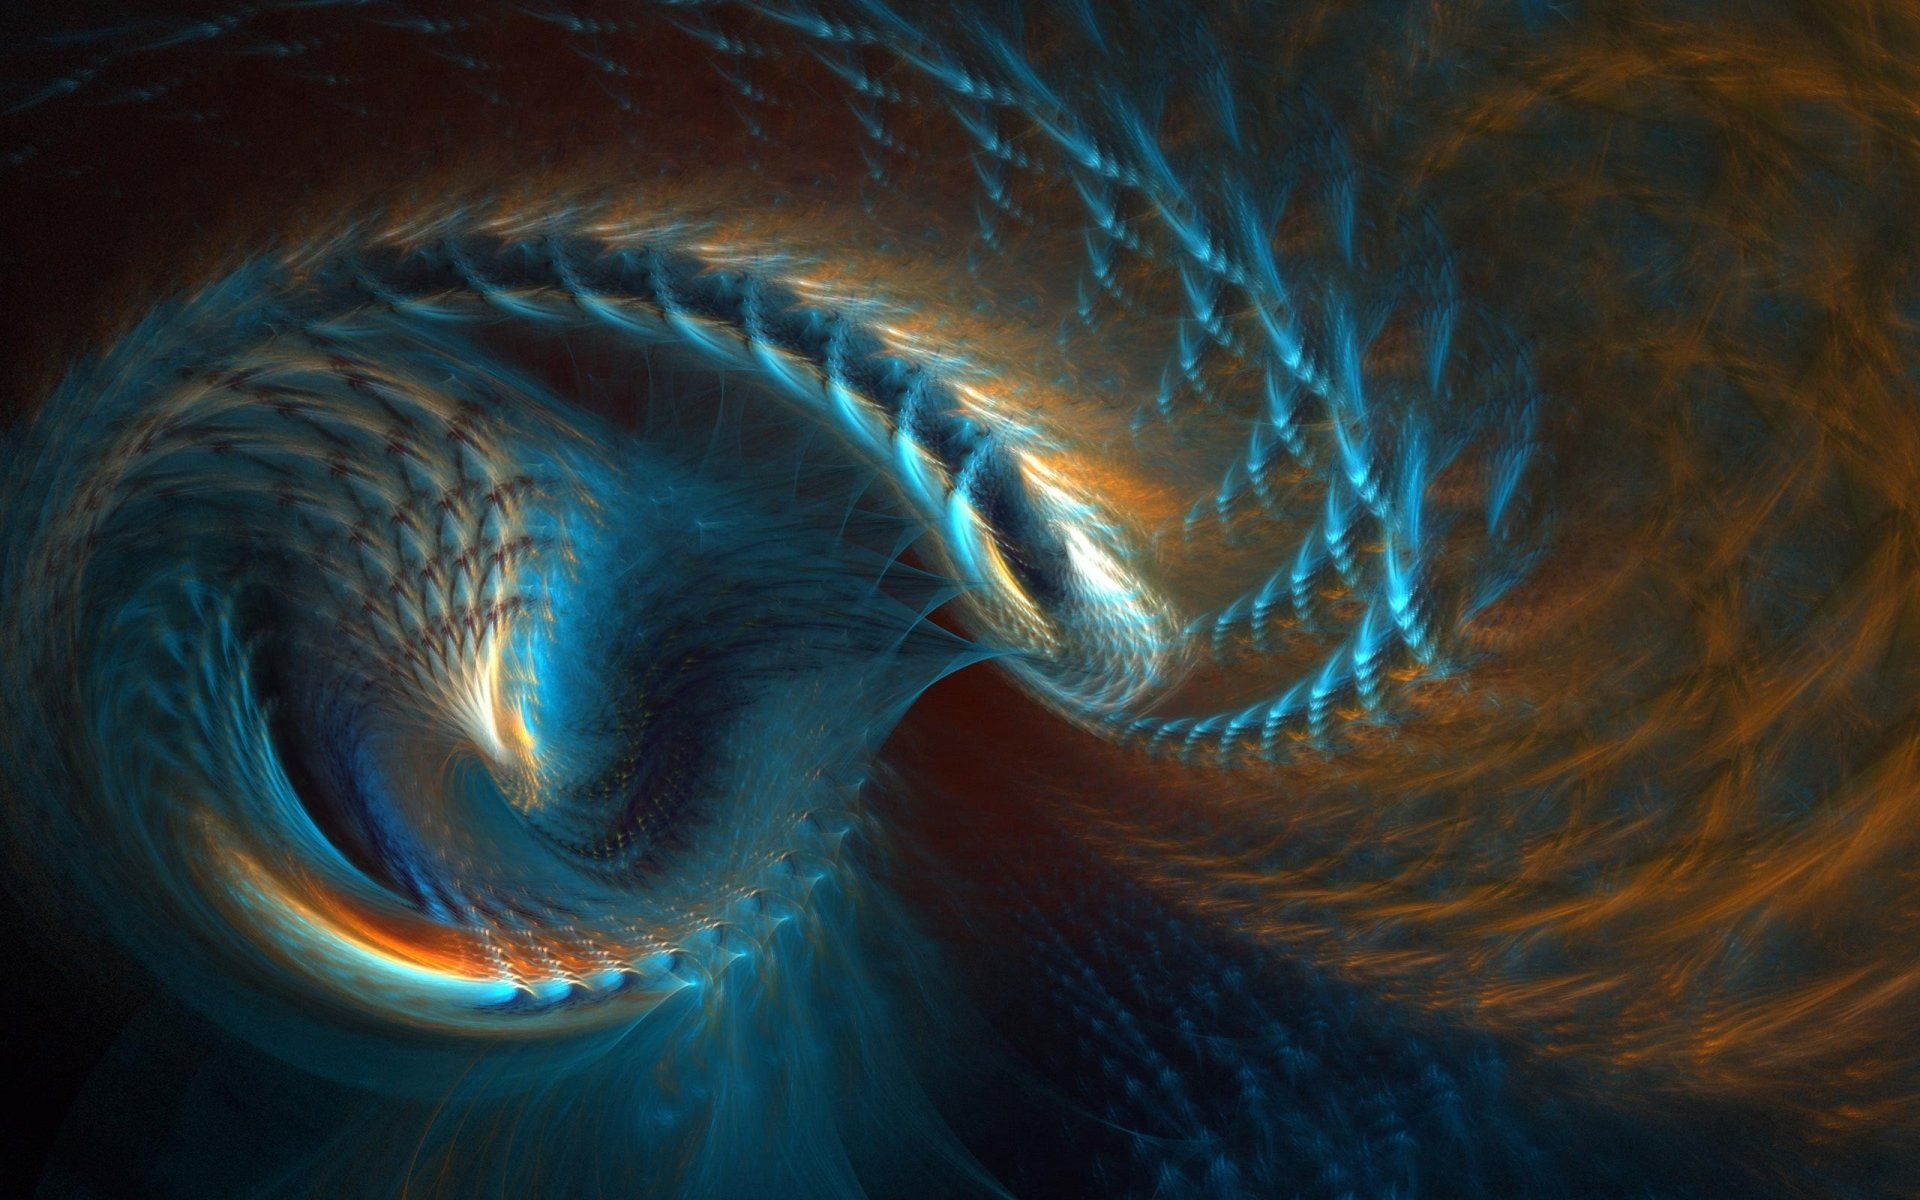 Abstract - Fractal  Digital Digital Art Artistic Abstract Wallpaper